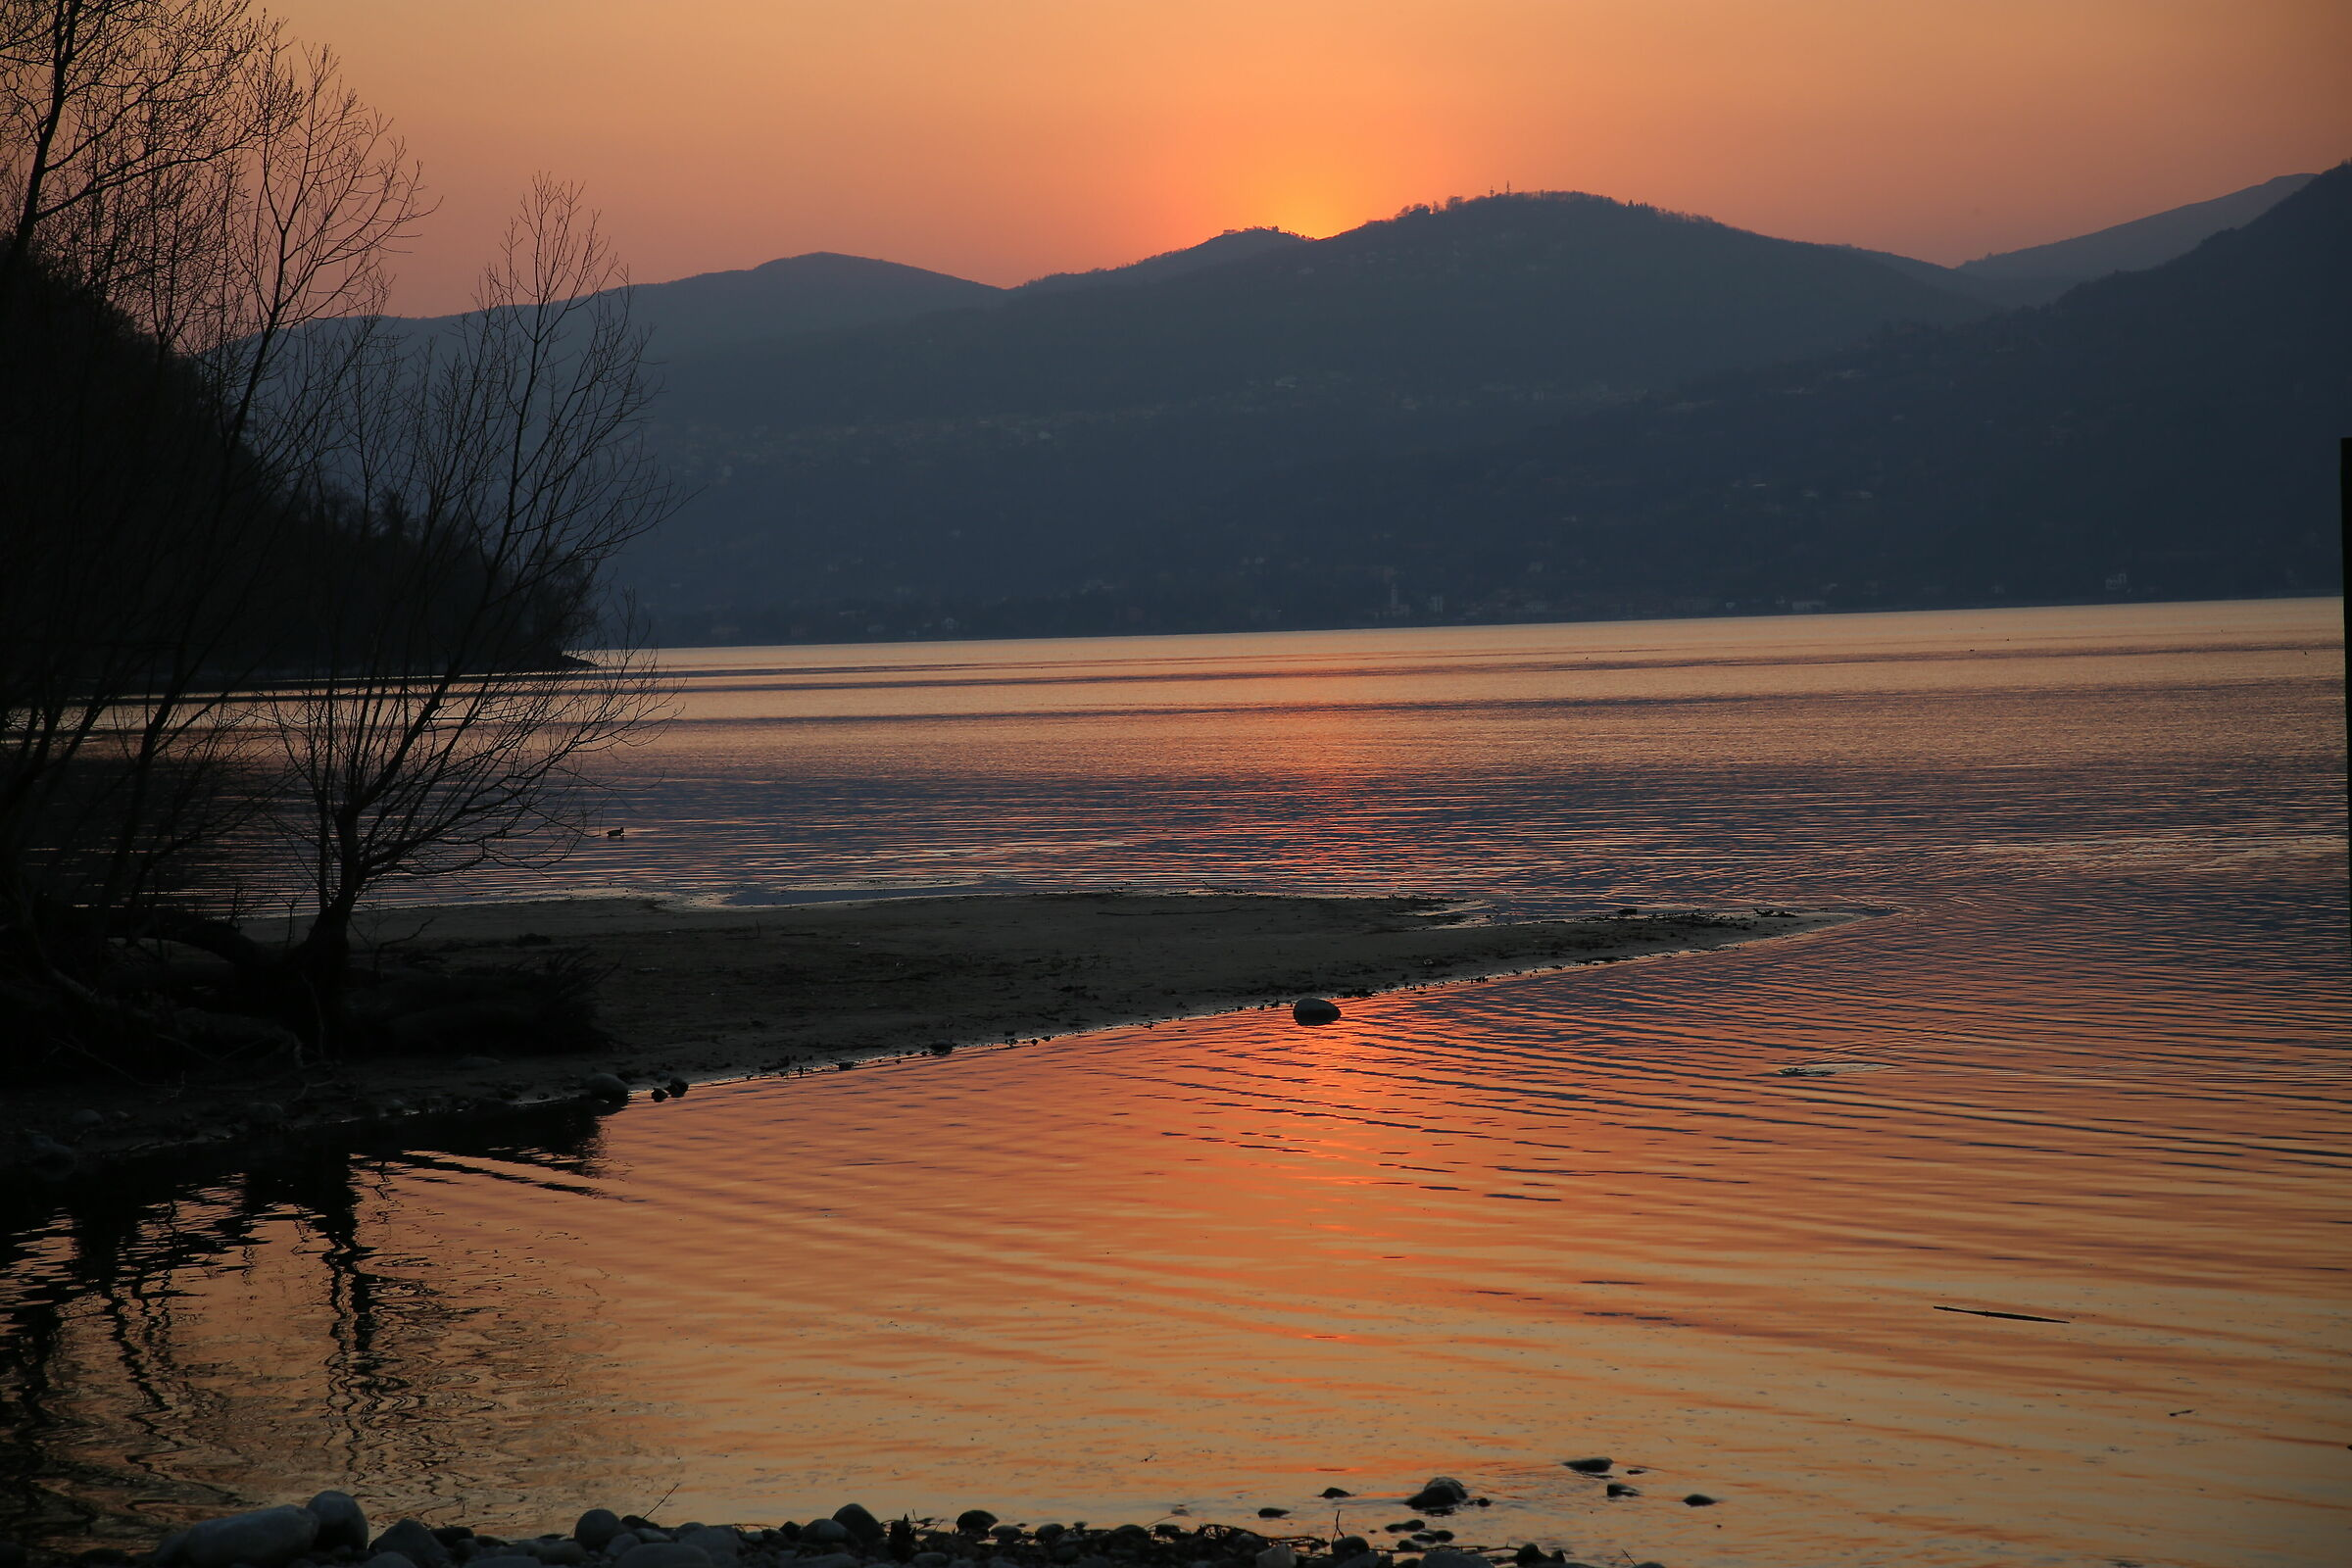 Sunset on Lake Maggiore...